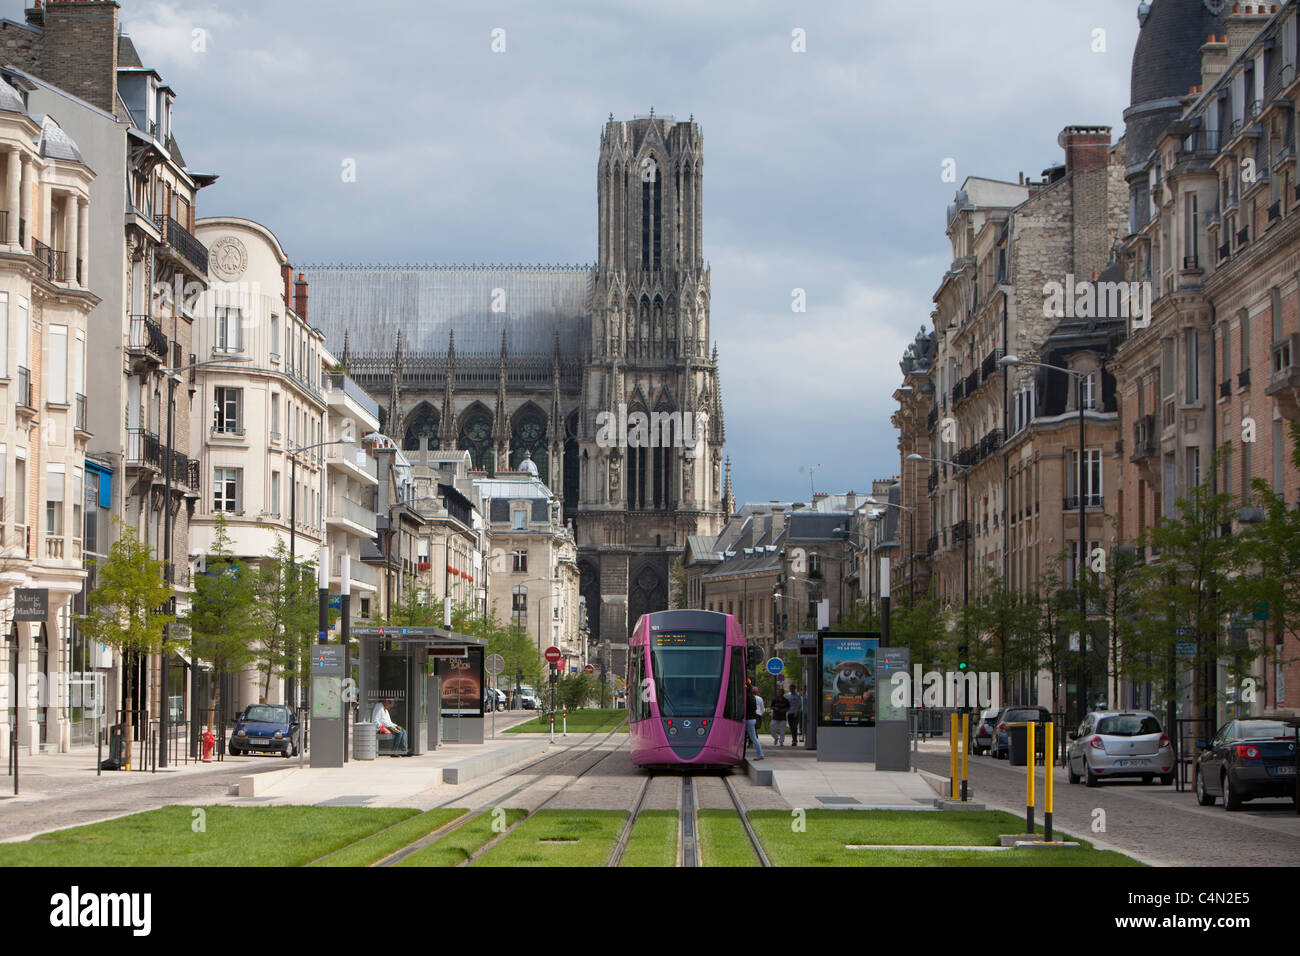 france reims tram tramway train rail cathedral city stock photo royalty free image. Black Bedroom Furniture Sets. Home Design Ideas